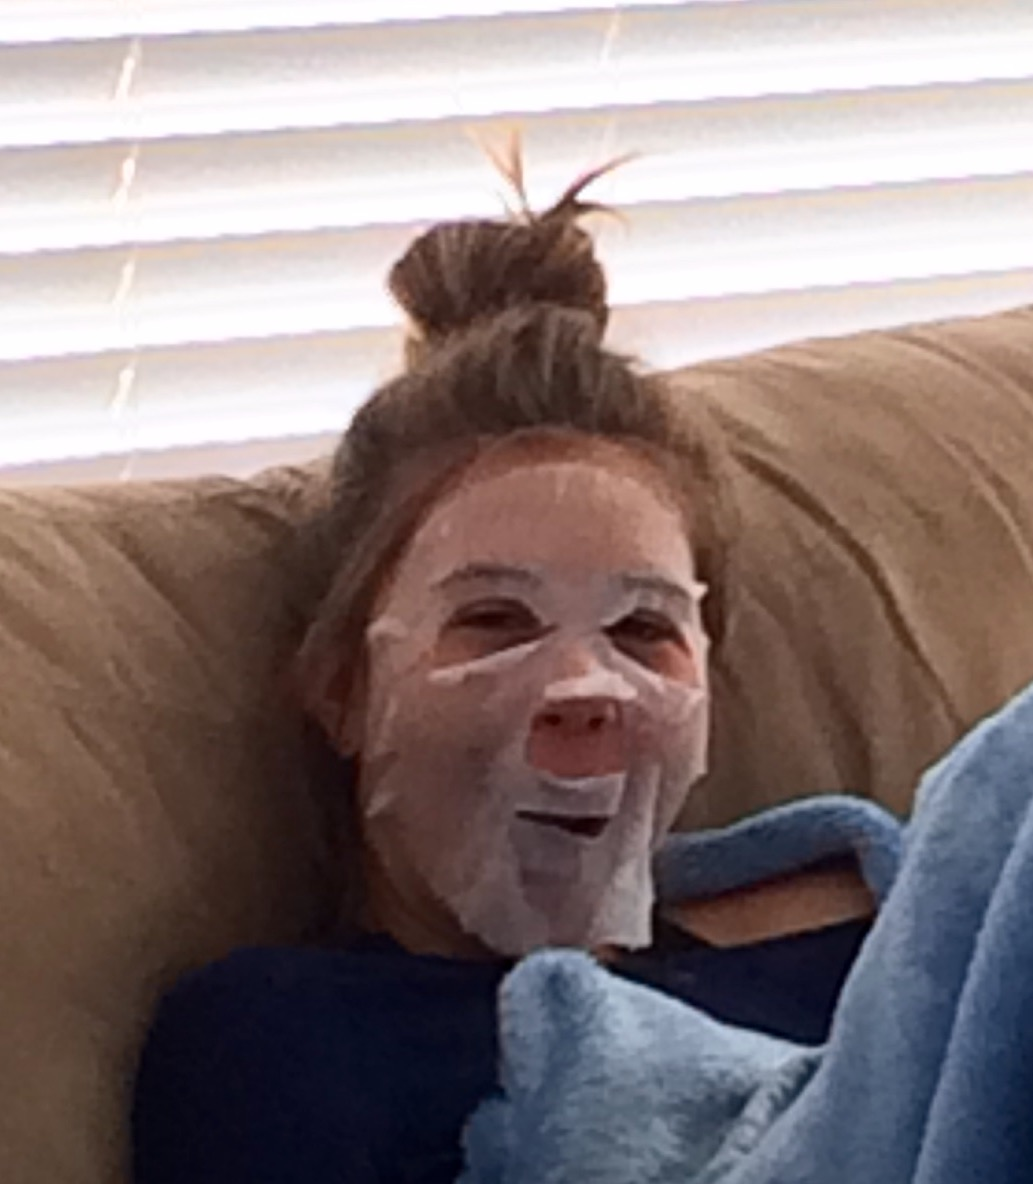 favorite picture of one of my besties with a face mask on. she will kill me when she sees this btw.